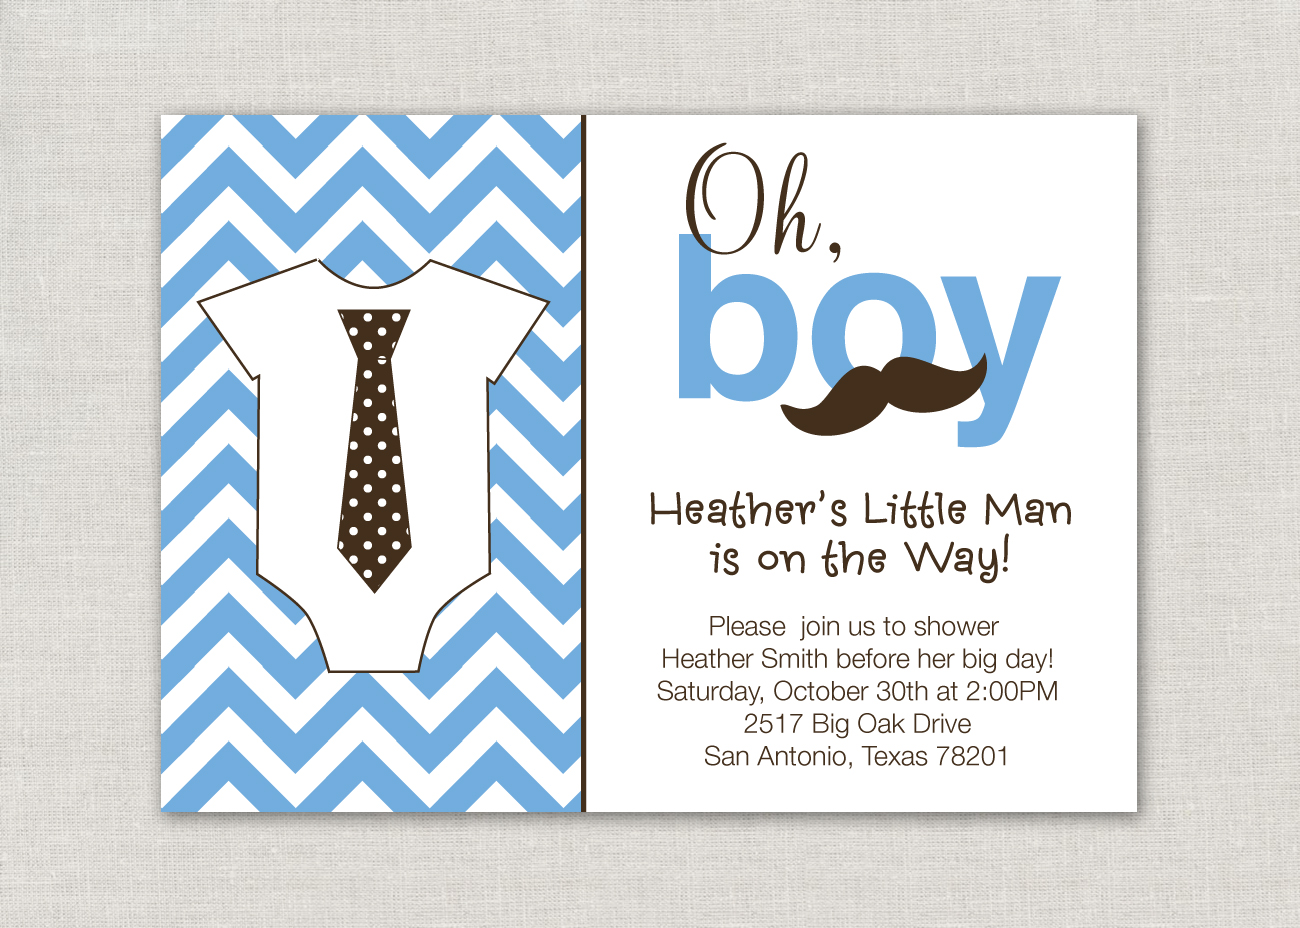 Priss prints oh boy a little man is on the way this is a fun modern baby shower invitation for a little man themed baby shower filmwisefo Choice Image